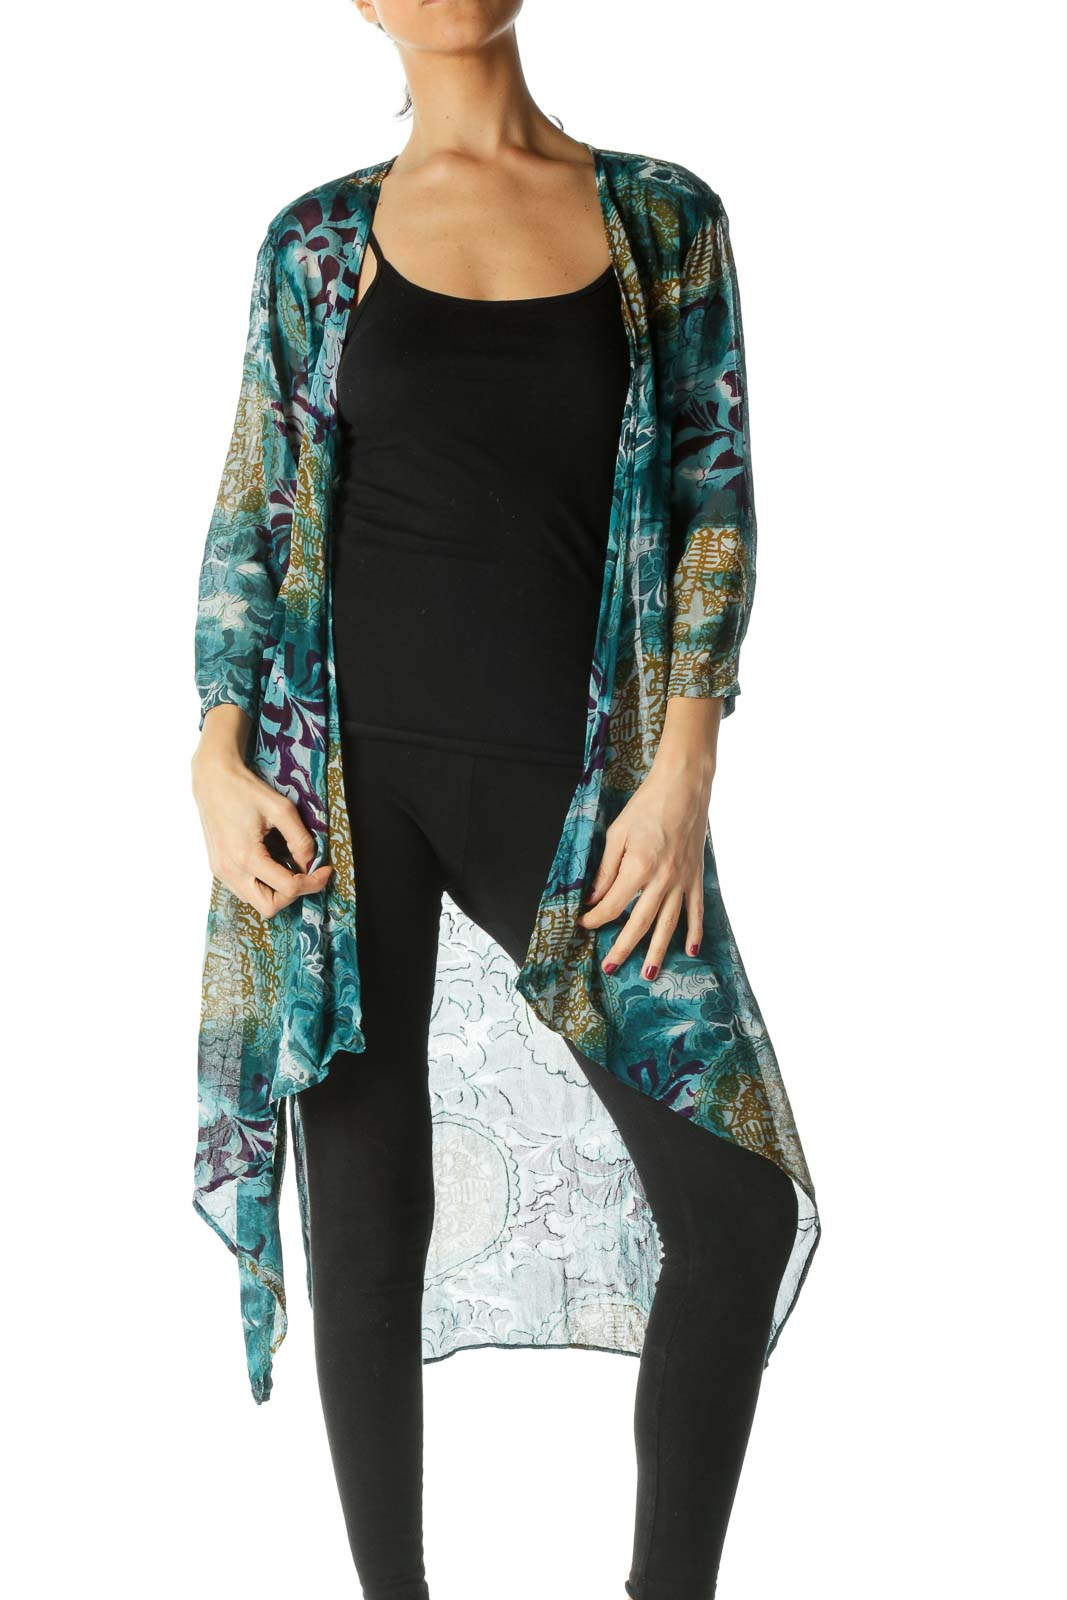 Blue and Green Print Sheer Long Cardigan Front